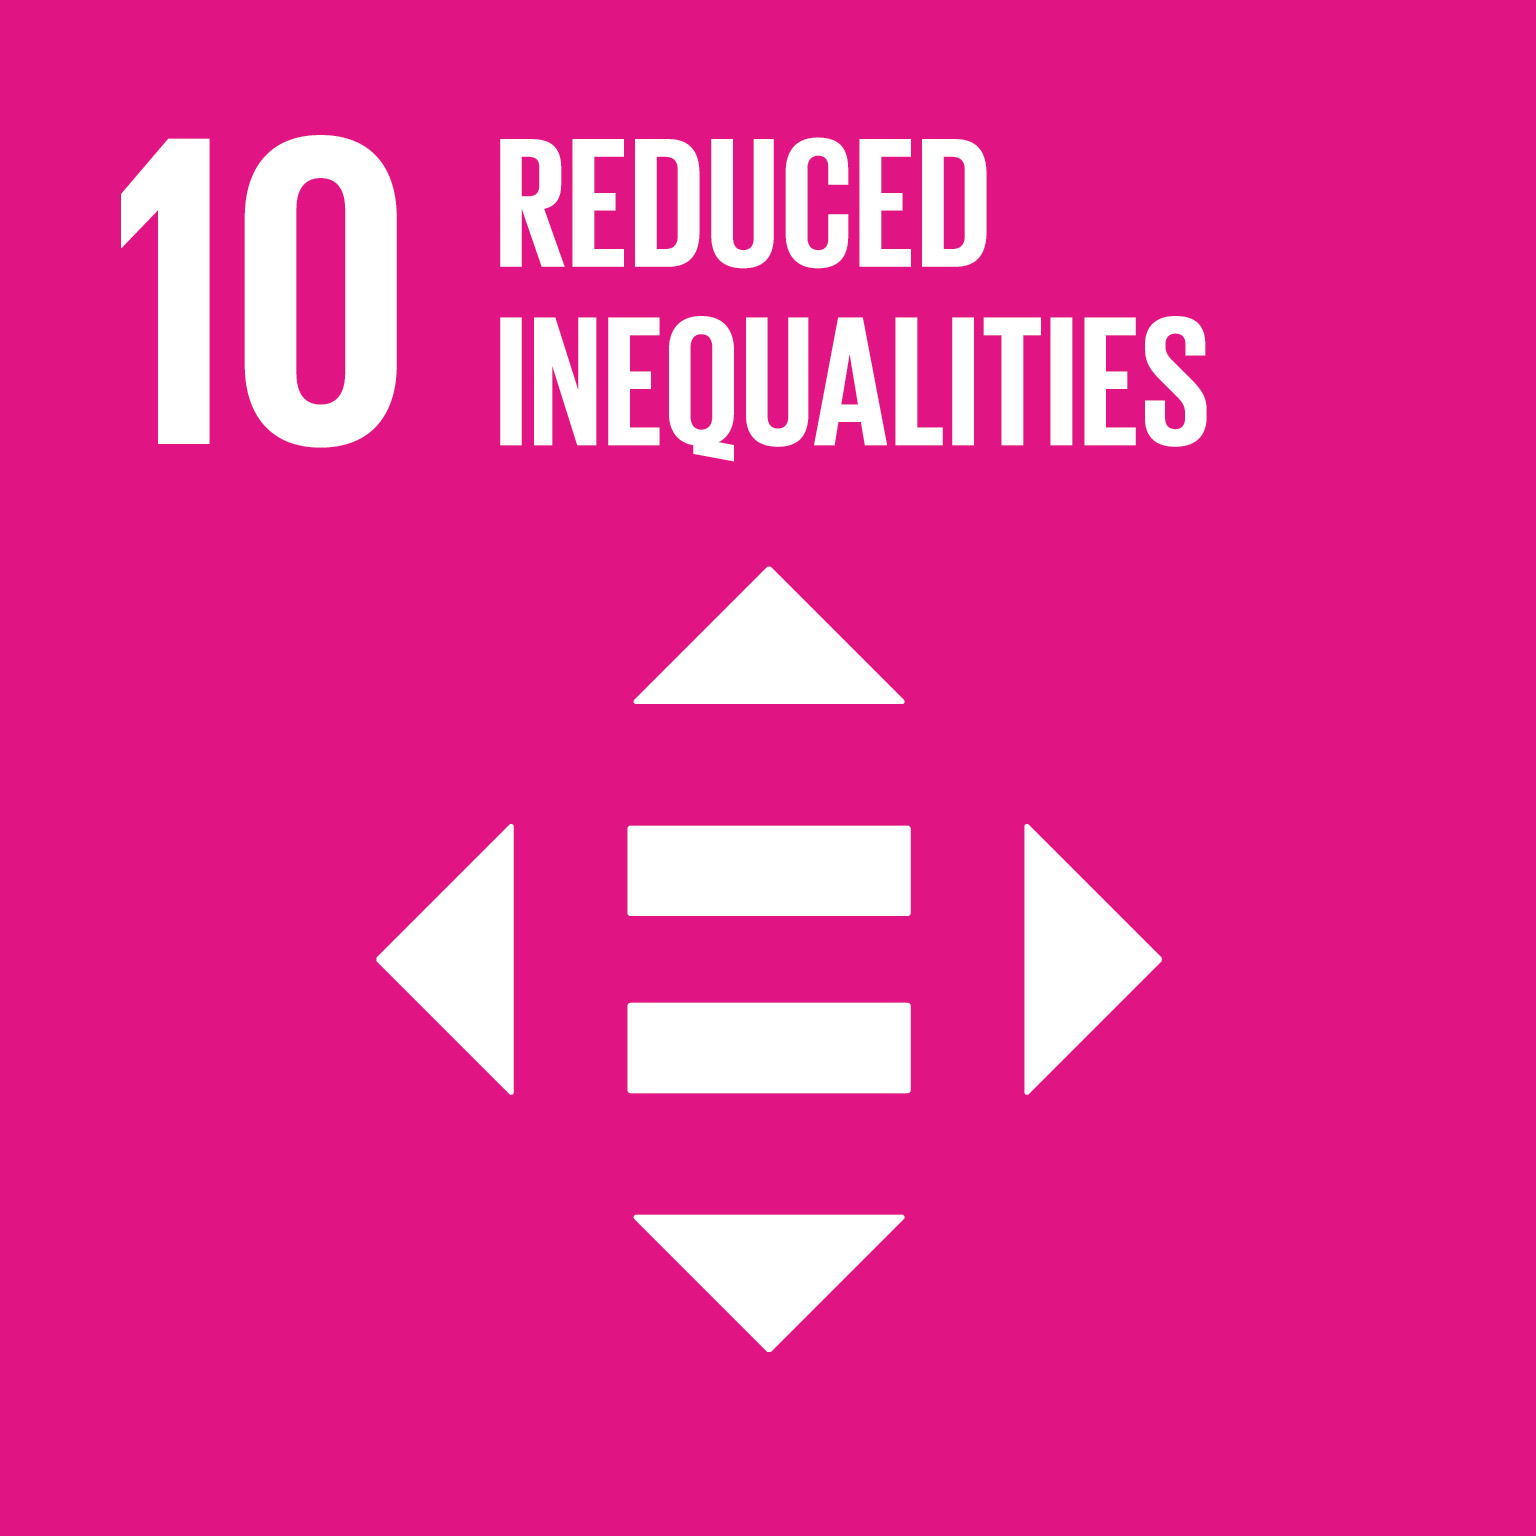 Goal 10 – Reduced inequalities